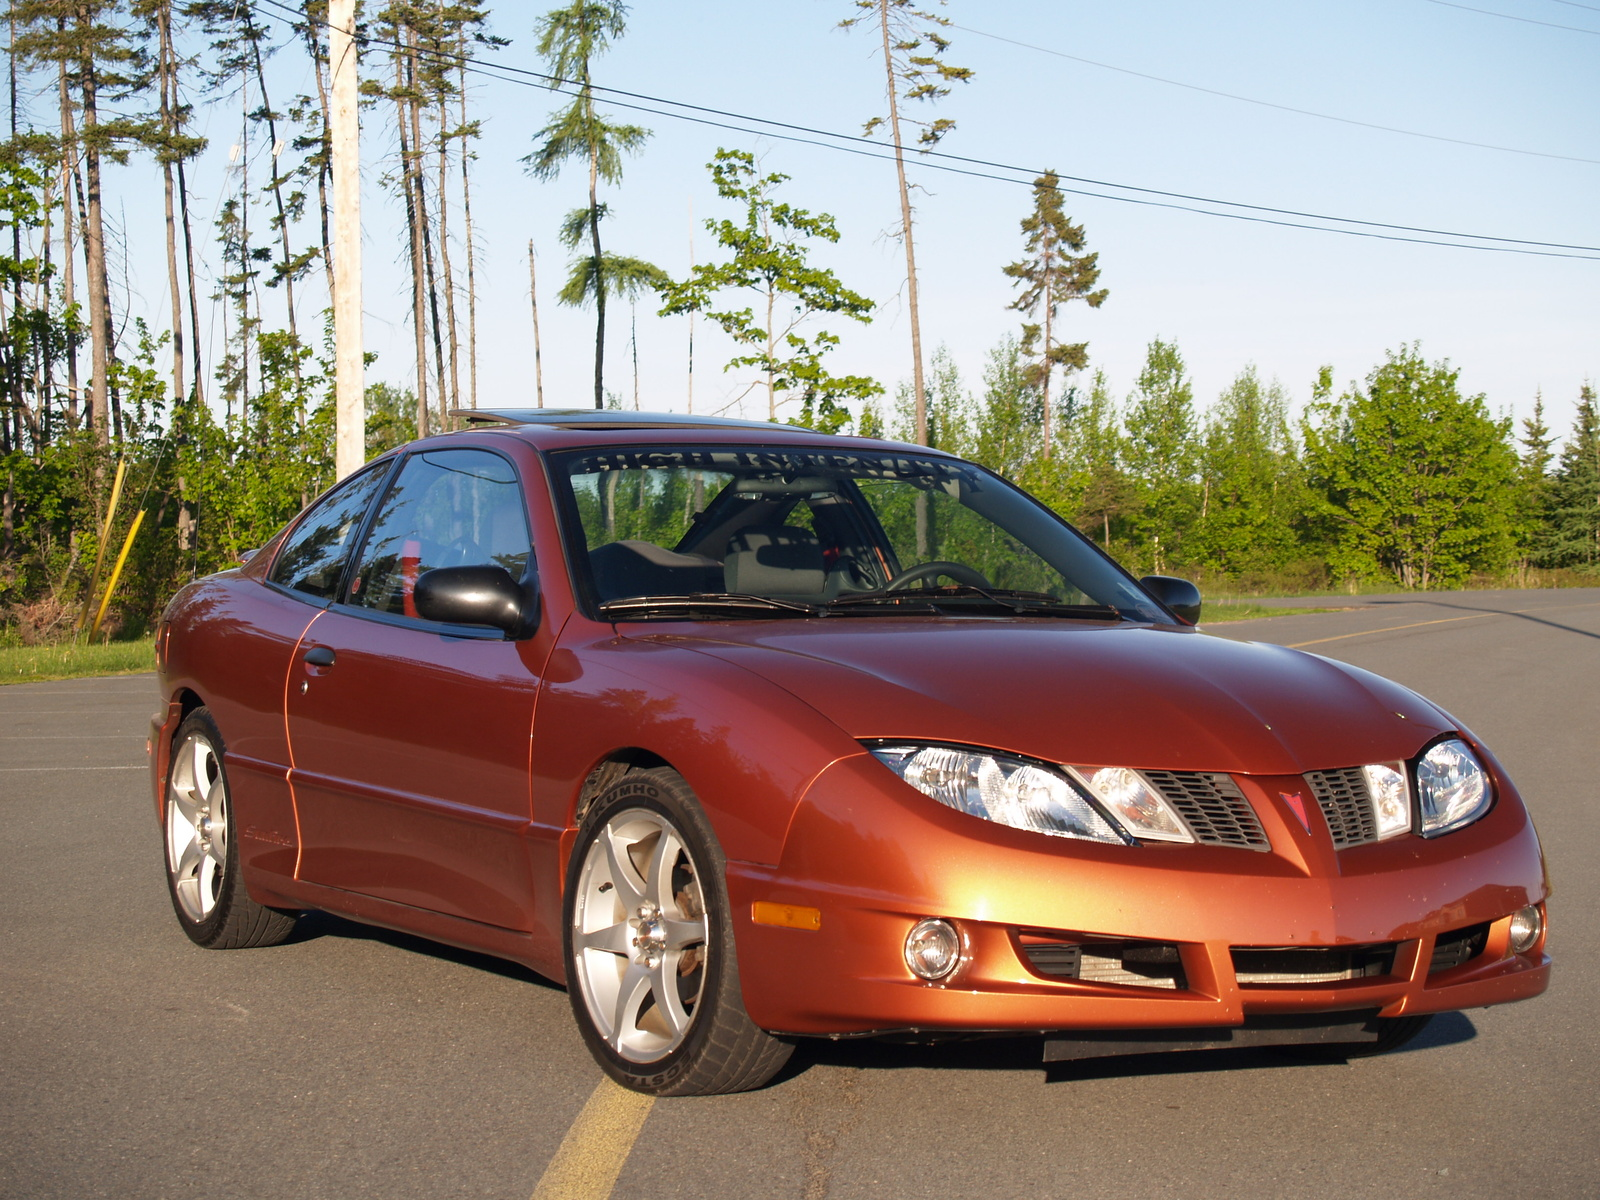 2004 Pontiac Sunfire Base picture